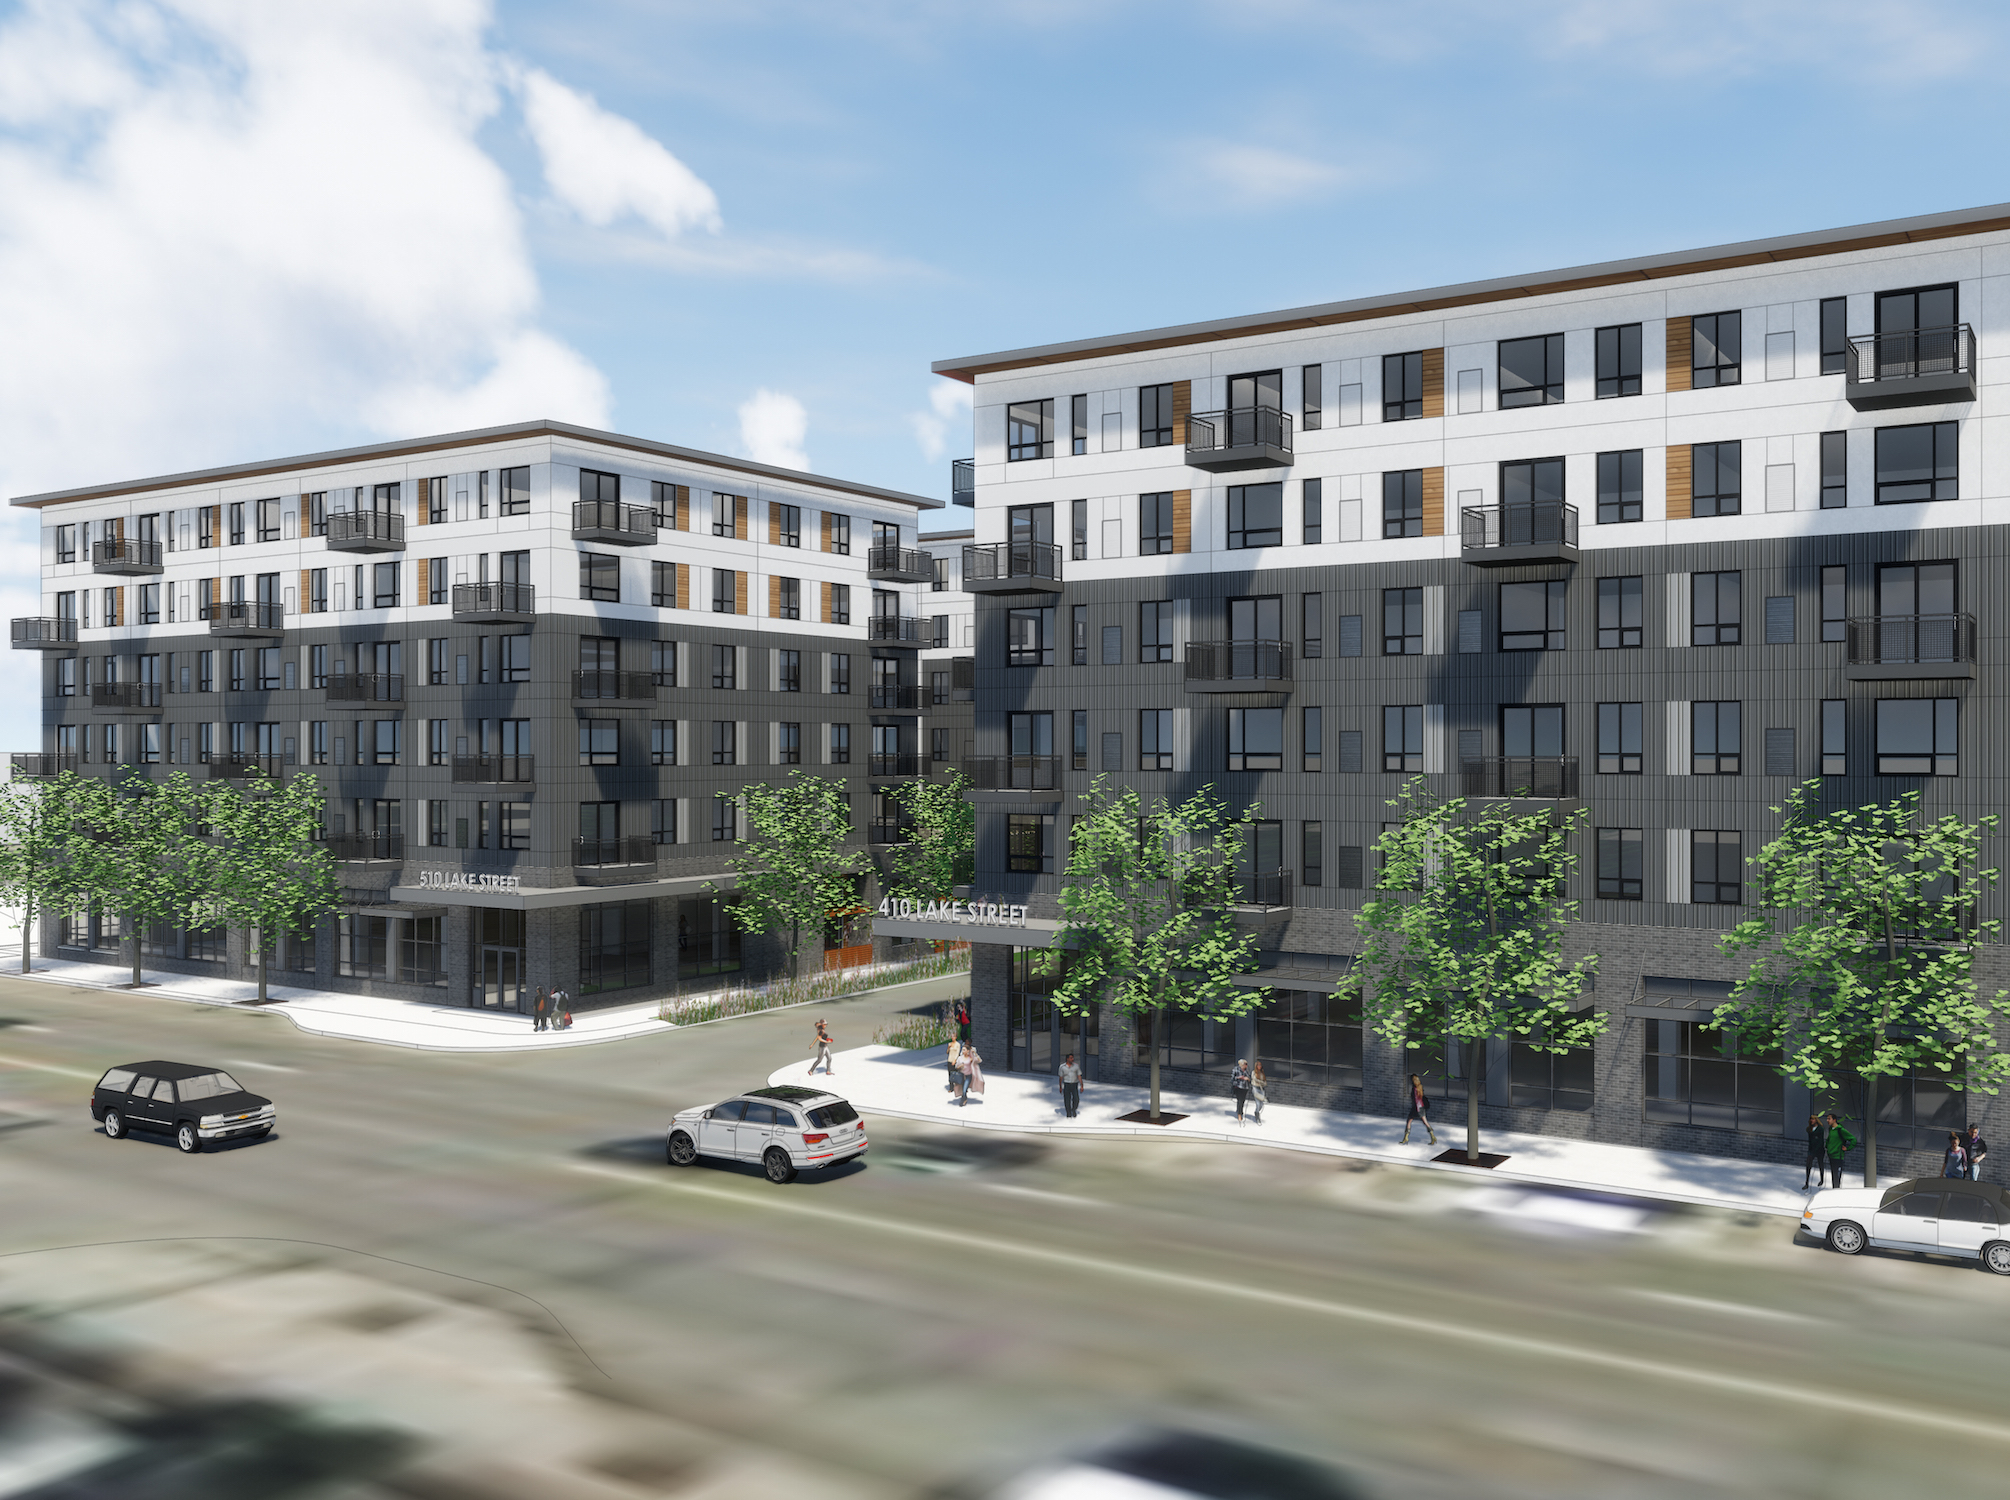 Lupe Development Partners has pitched plans for two six-story, 111-unit apartment buildings on Lake Street two blocks east of the Lake & Lyndale intersection. Rendering courtesy Lupe Development Partners